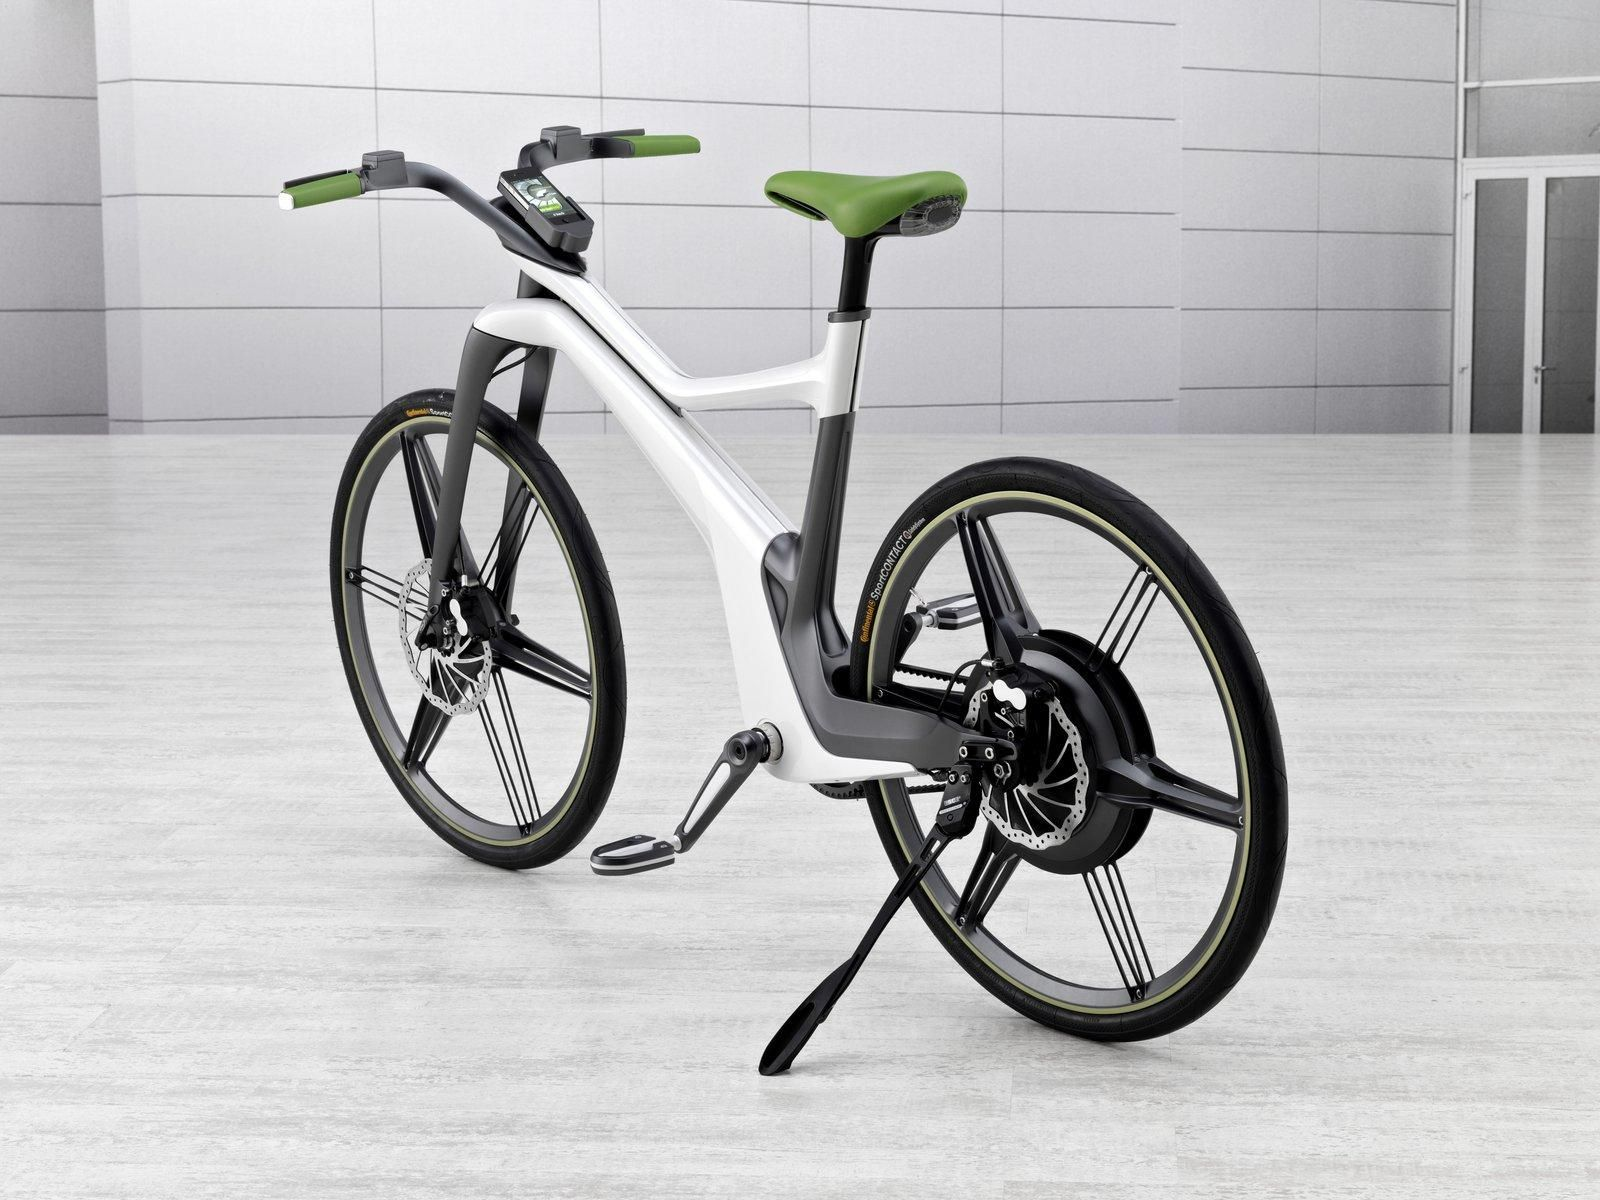 Smart electric bicycle concept 5 jpg 1600 1200